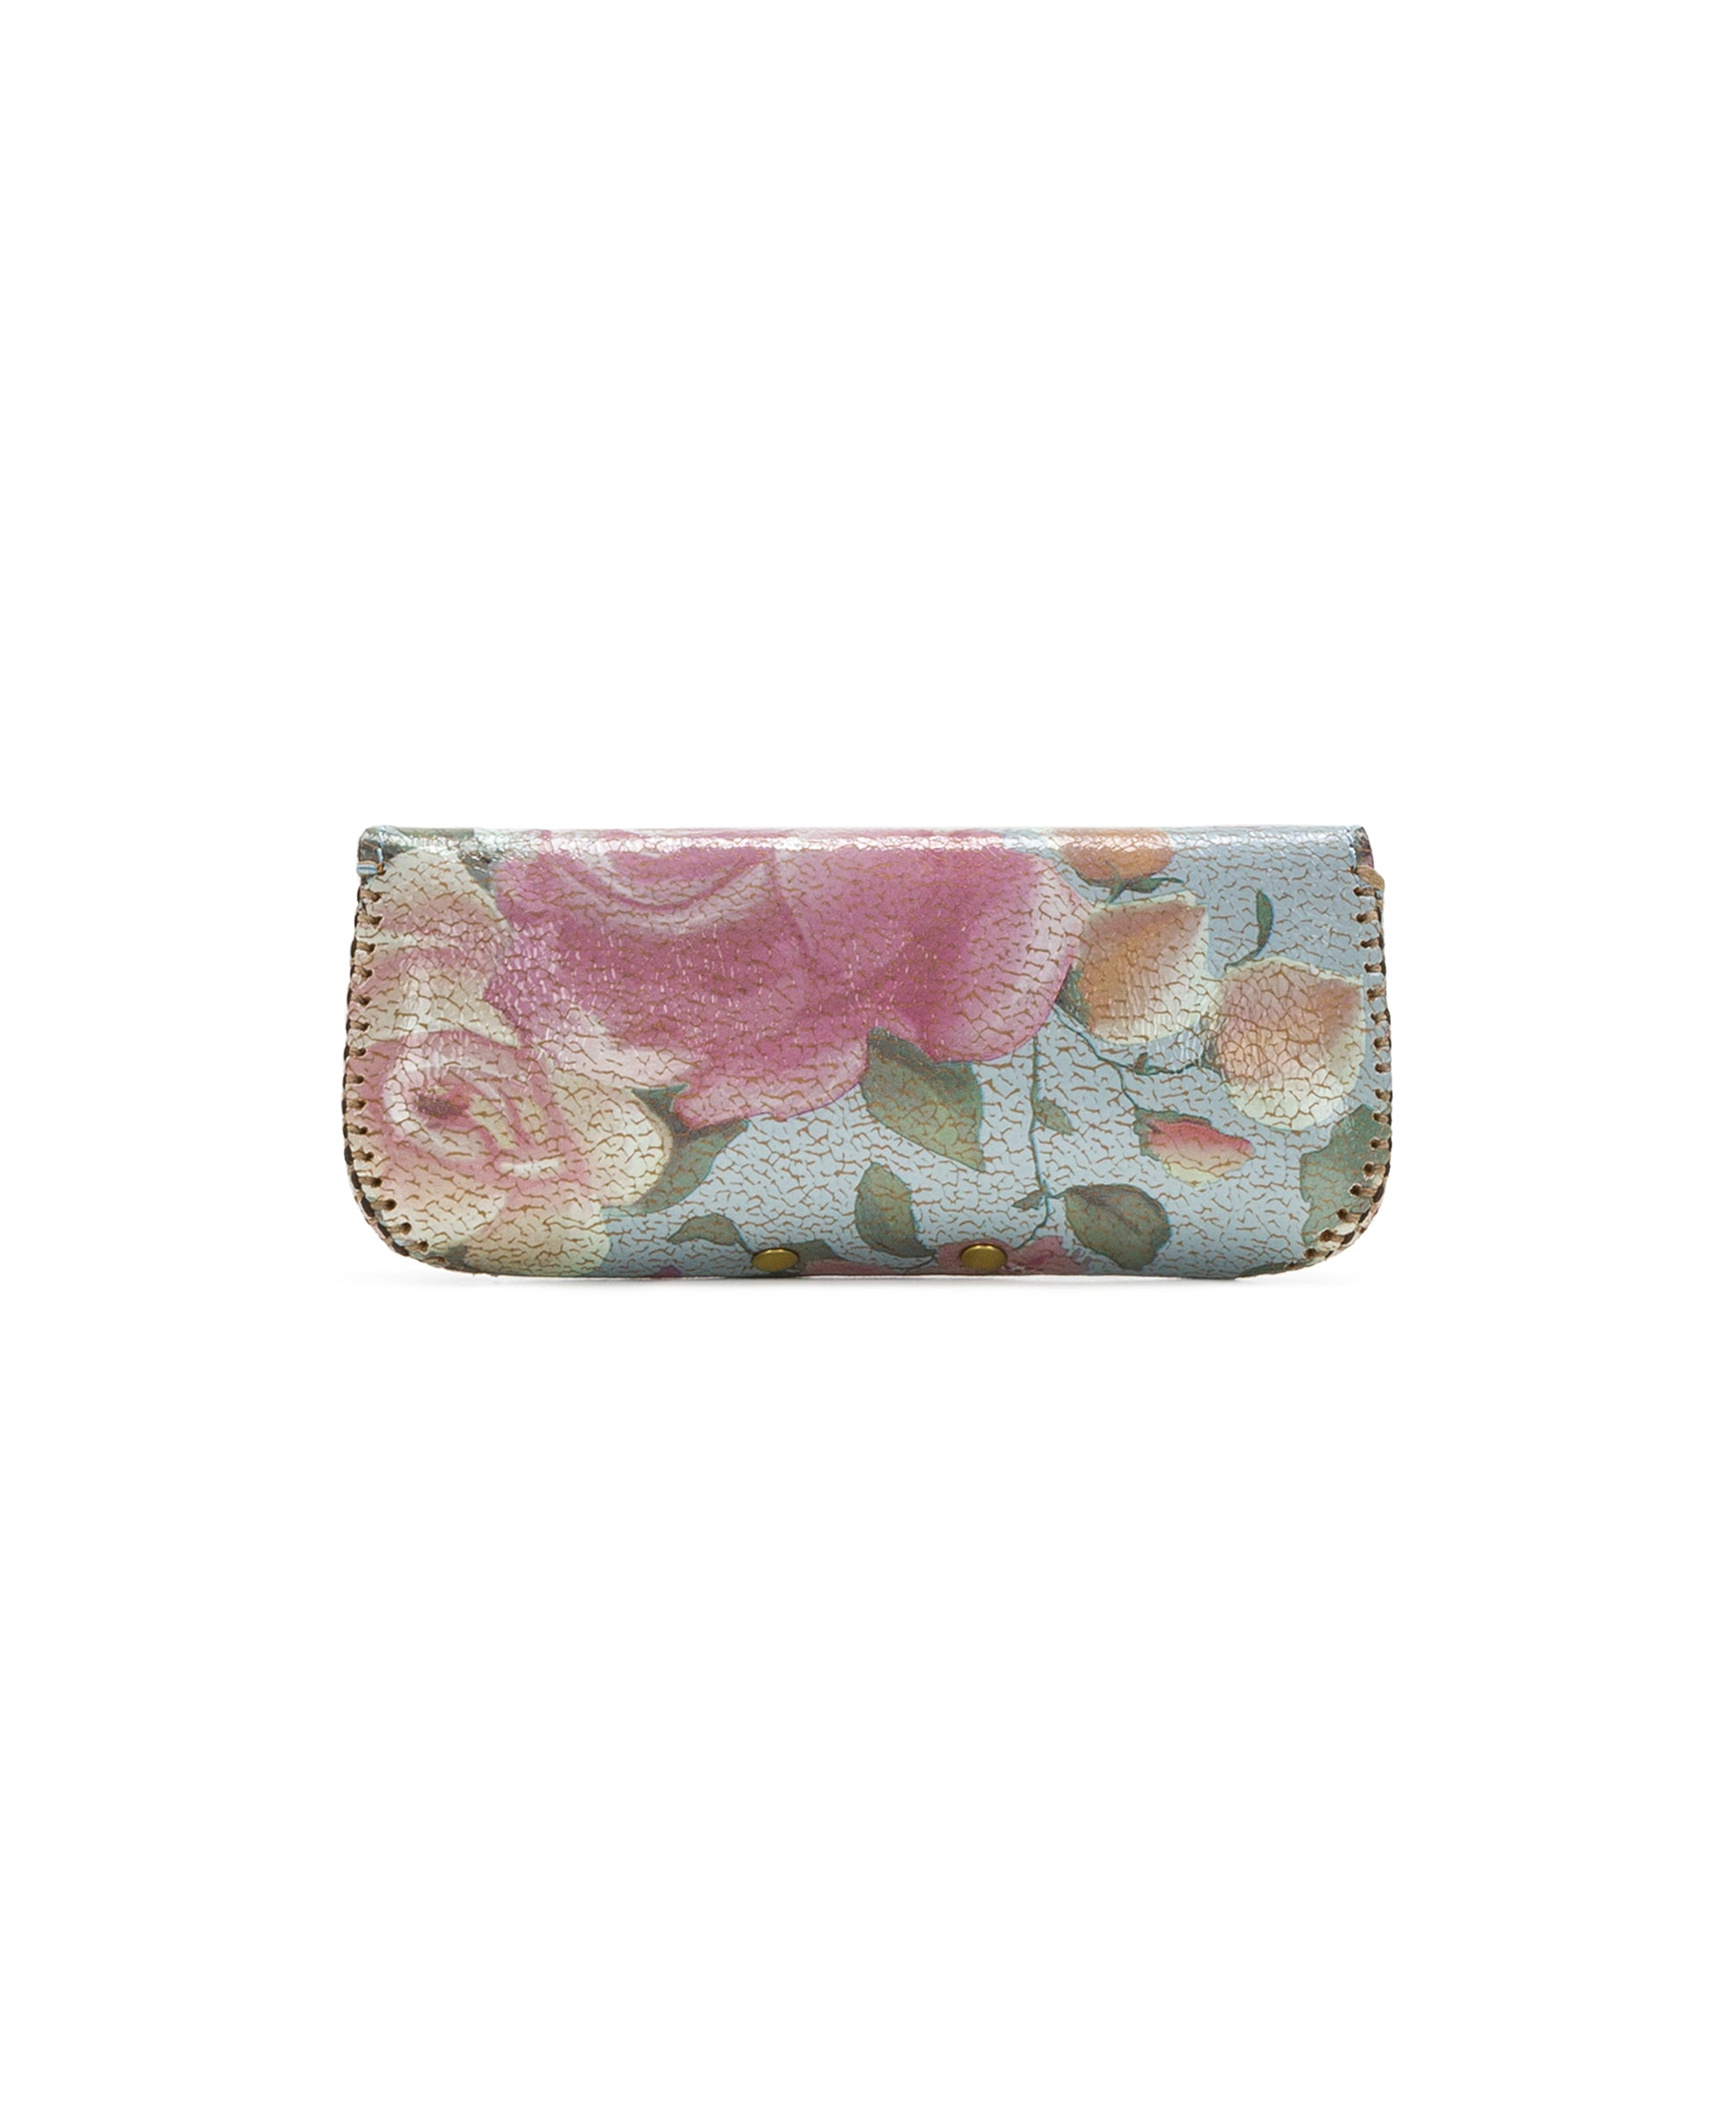 Ardenza Sunglass Case - Crackled Rose 2